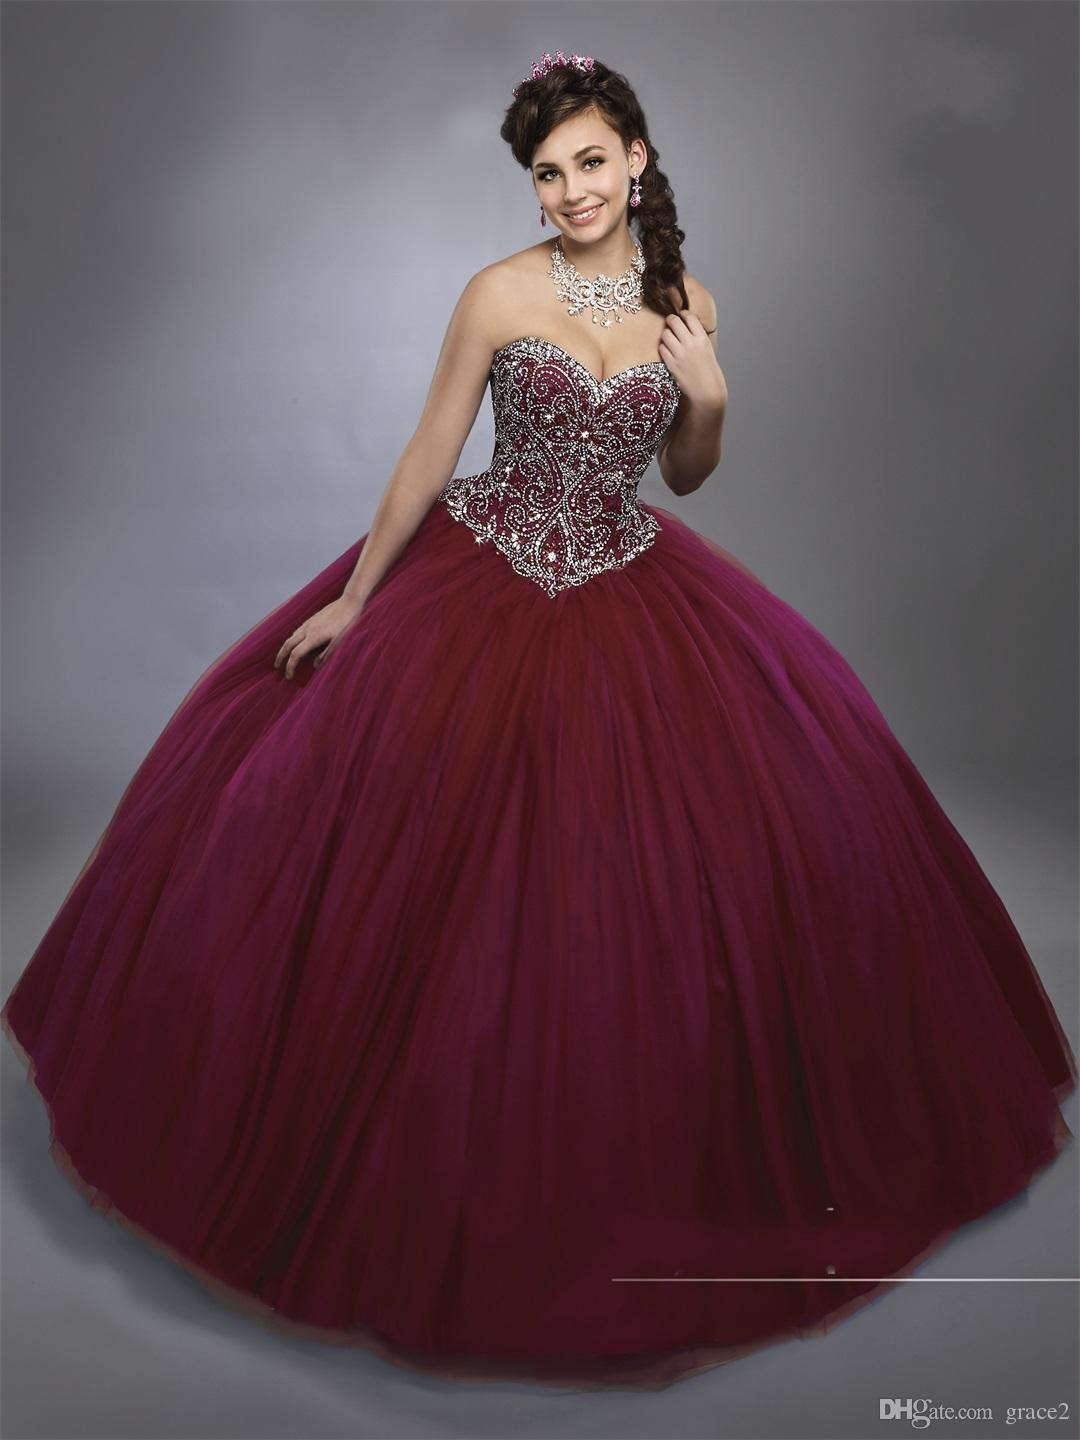 00450d48489 Dark Burgundy Quinceanera Dresses 2017 Mary s with Sheer Bolero and Lace Up  Back Bling Bling Crystals Royal Blue Sweet 15 Dress Sweetheart